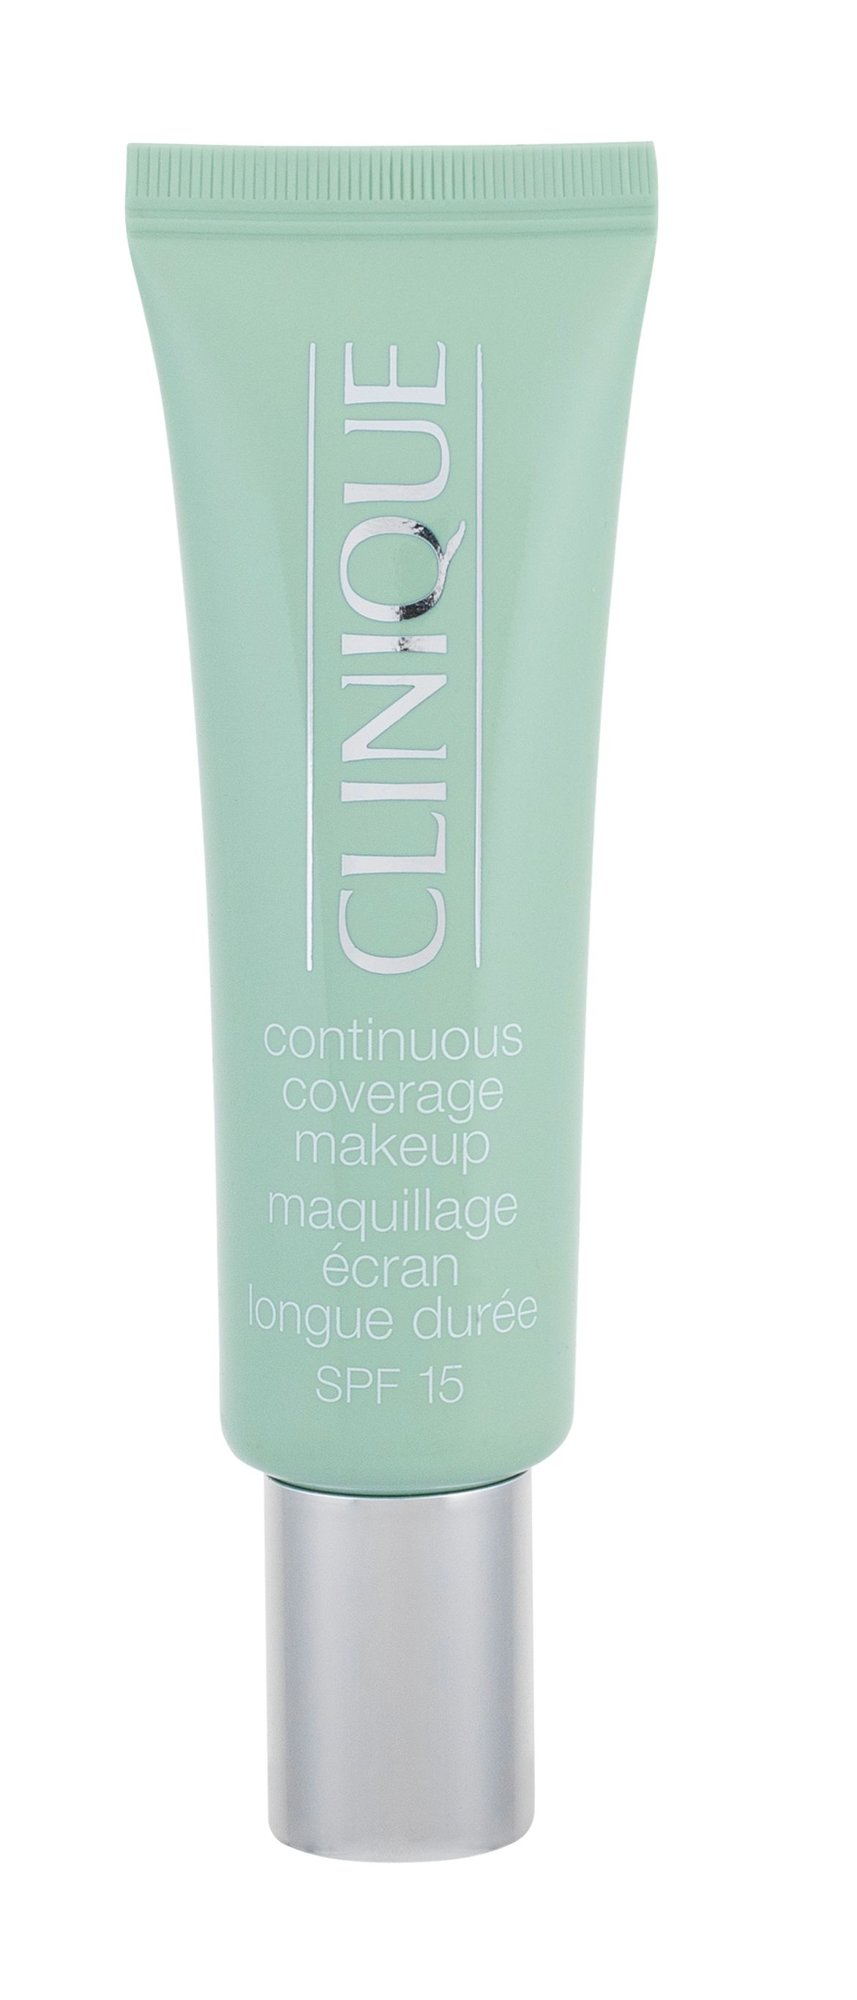 Clinique Continuous Coverage Cosmetic 30ml 01 Porcelain Glow SPF15